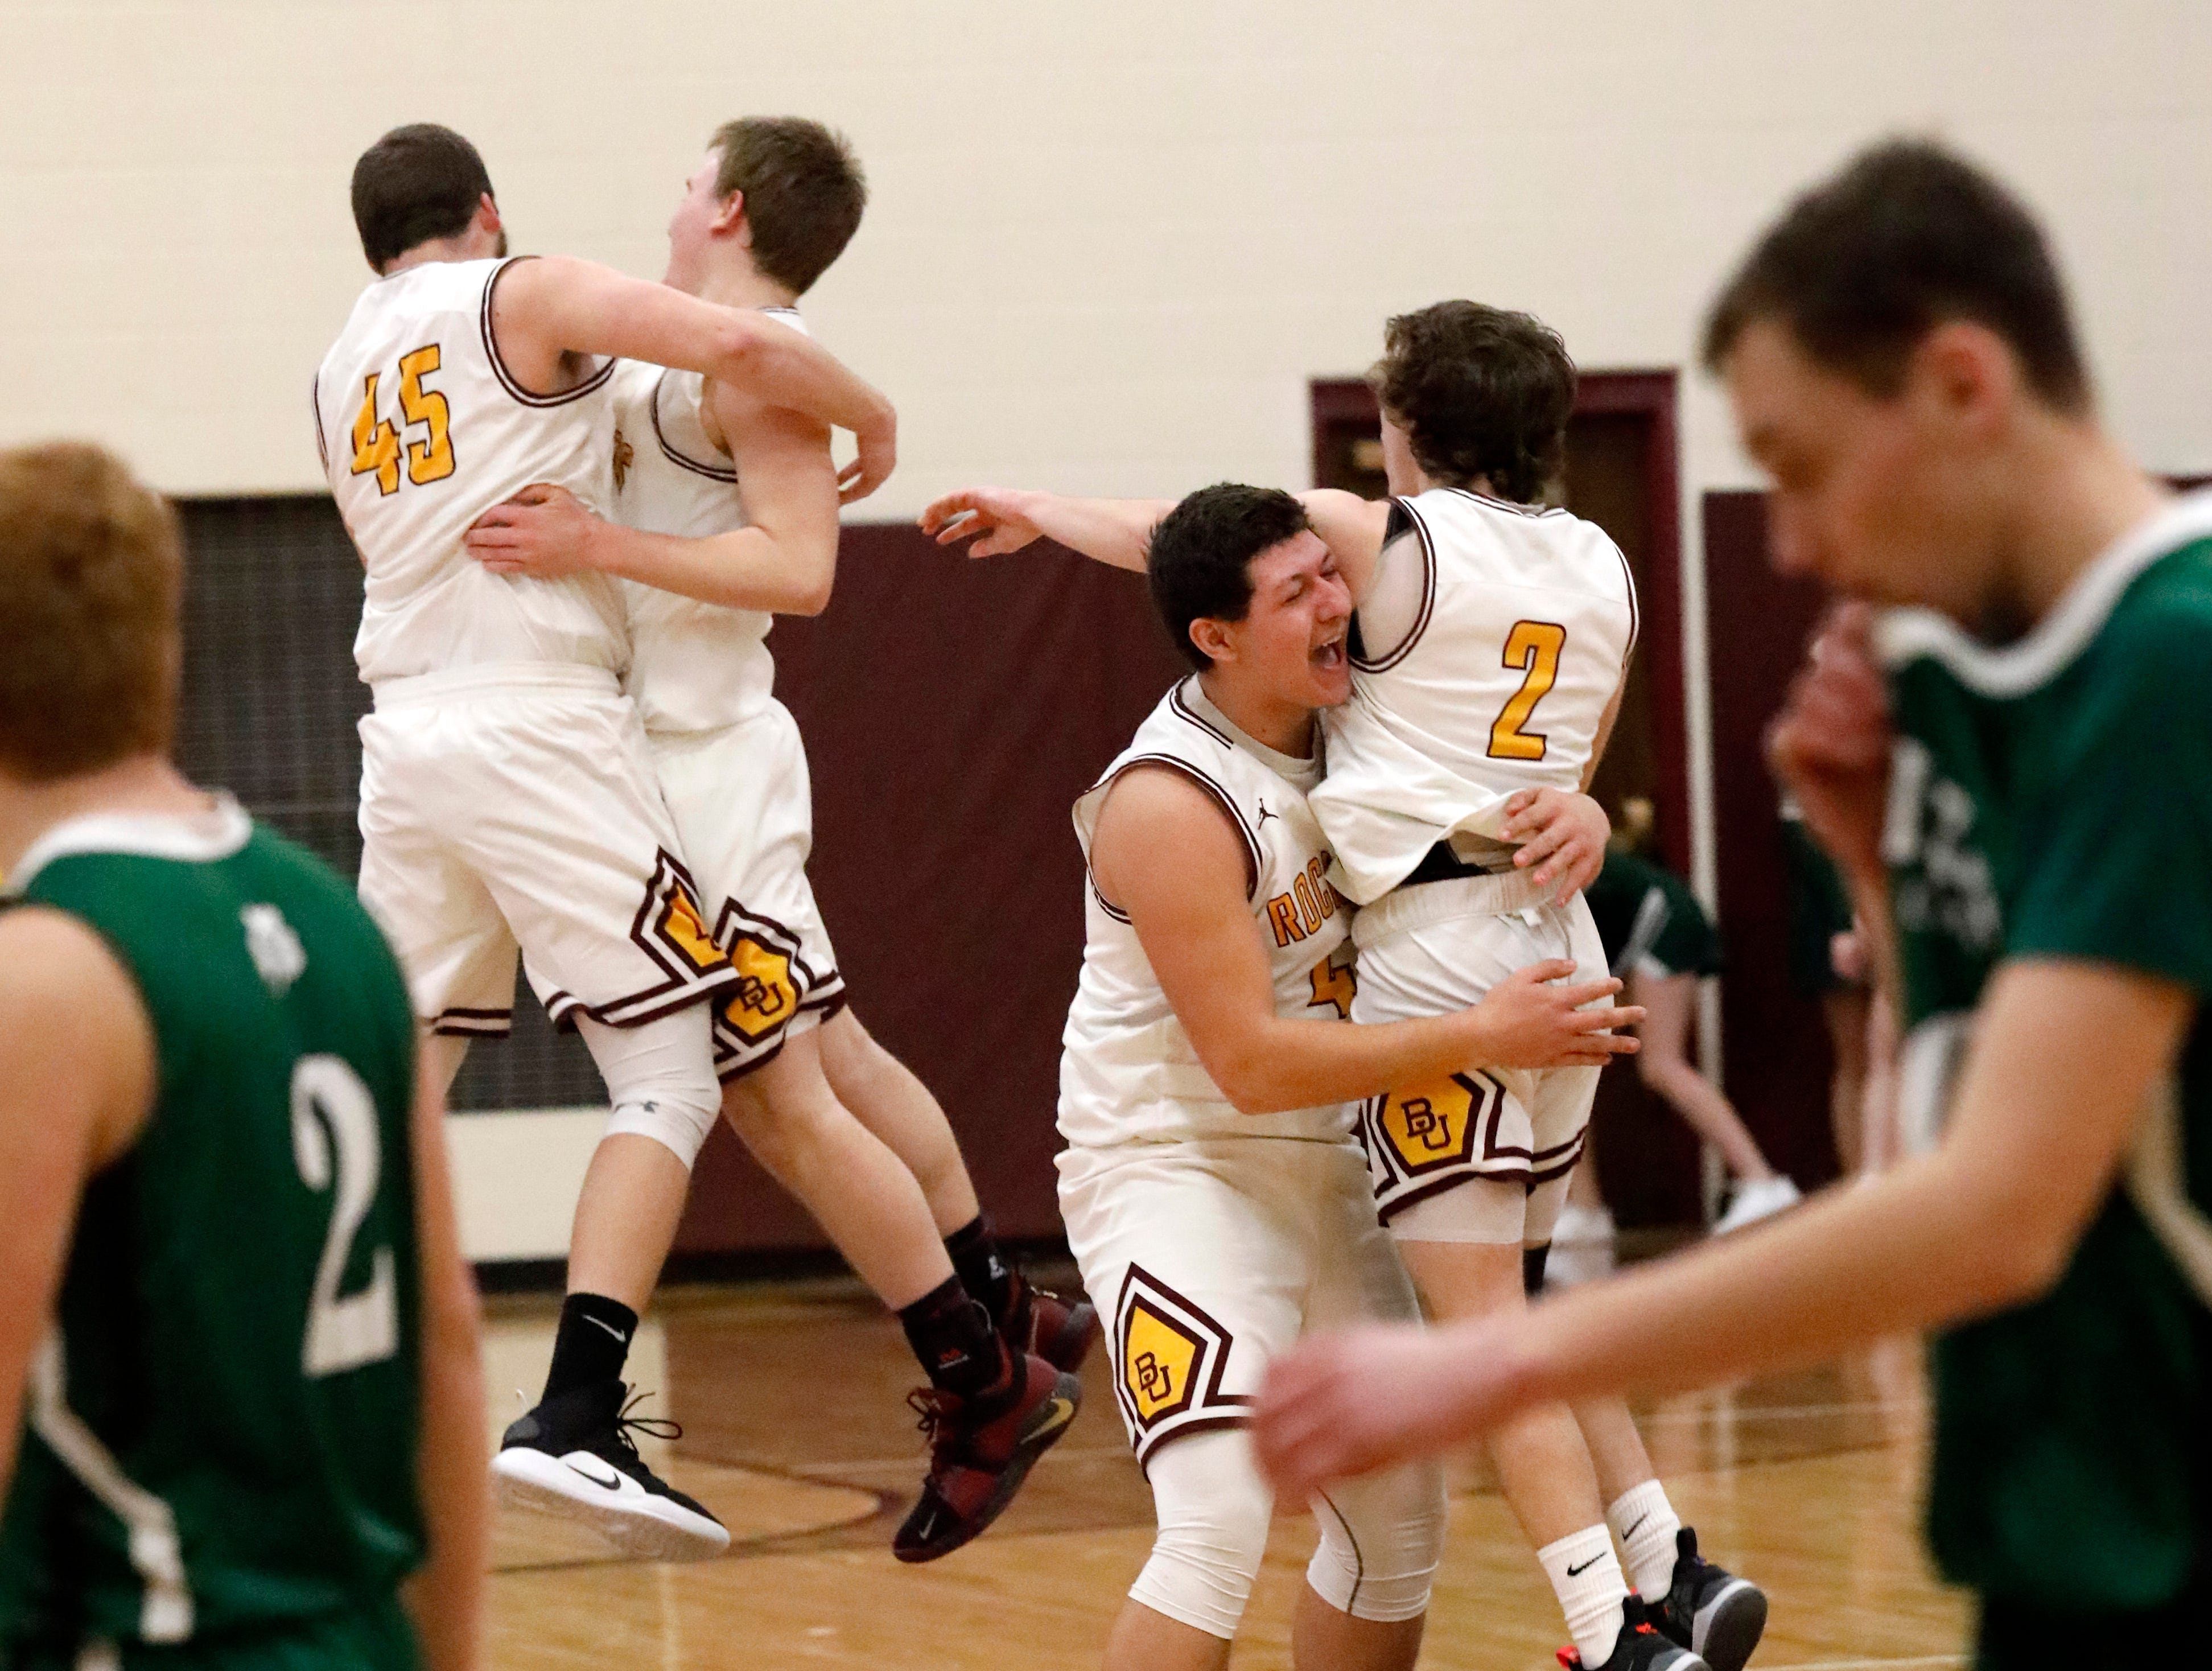 Berne Union's Baron Sullivan, far left, embraces Chase Blevens as Jacob Harmon does the same with Chase McCartney, far right, while Fisher Catholic's Carter Brady, left, and Bryson Vogel, right, walk off the court following the Rockets' 58-49 win over the Irish Tuesday night, Jan. 22, 2019, at Berne Union High School in Sugar Grove.